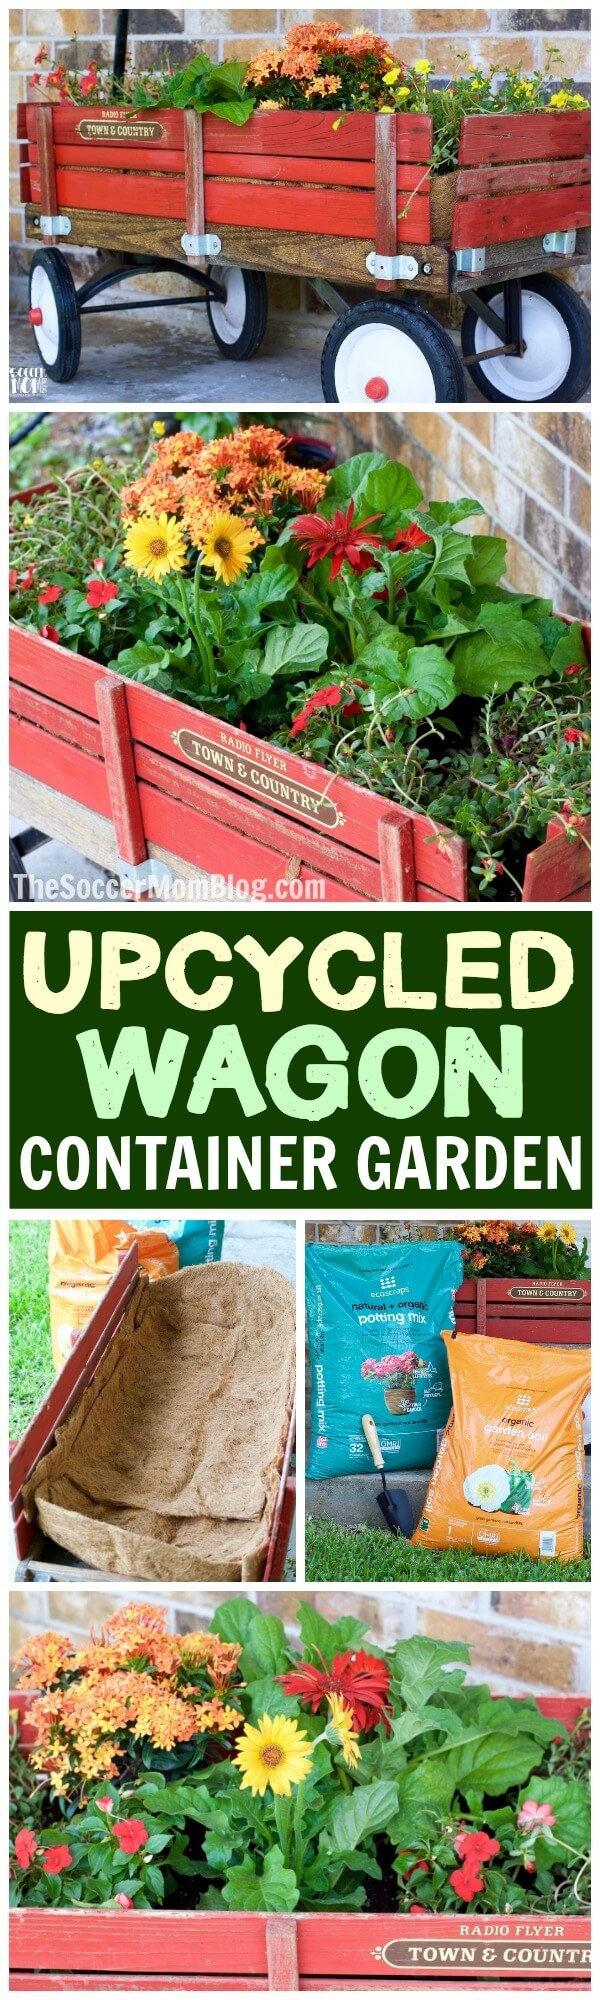 This gorgeous Vintage Wagon Garden Planter is an easy DIY home container gardening idea you can put together in 30 minutes or less — no tools required!